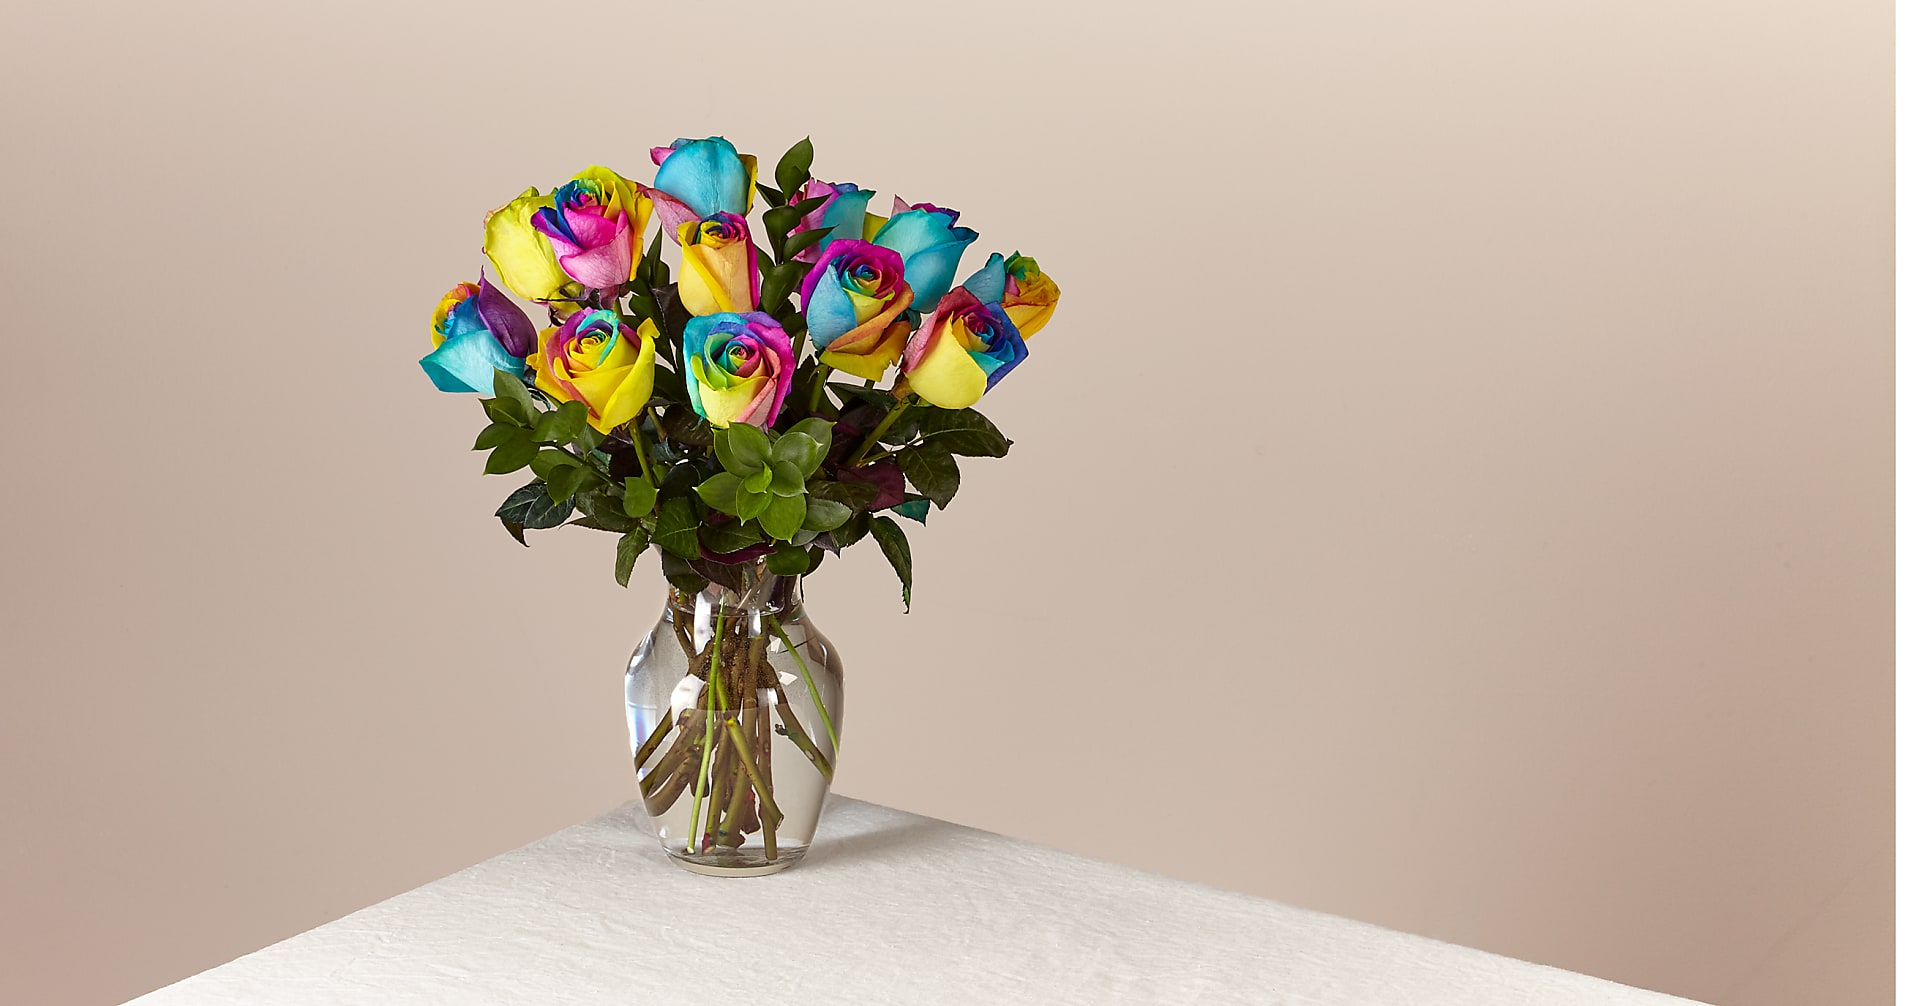 Time to Celebrate Rainbow Rose Bouquet - 12 Stems - VASE INCLUDED - Image 1 Of 3